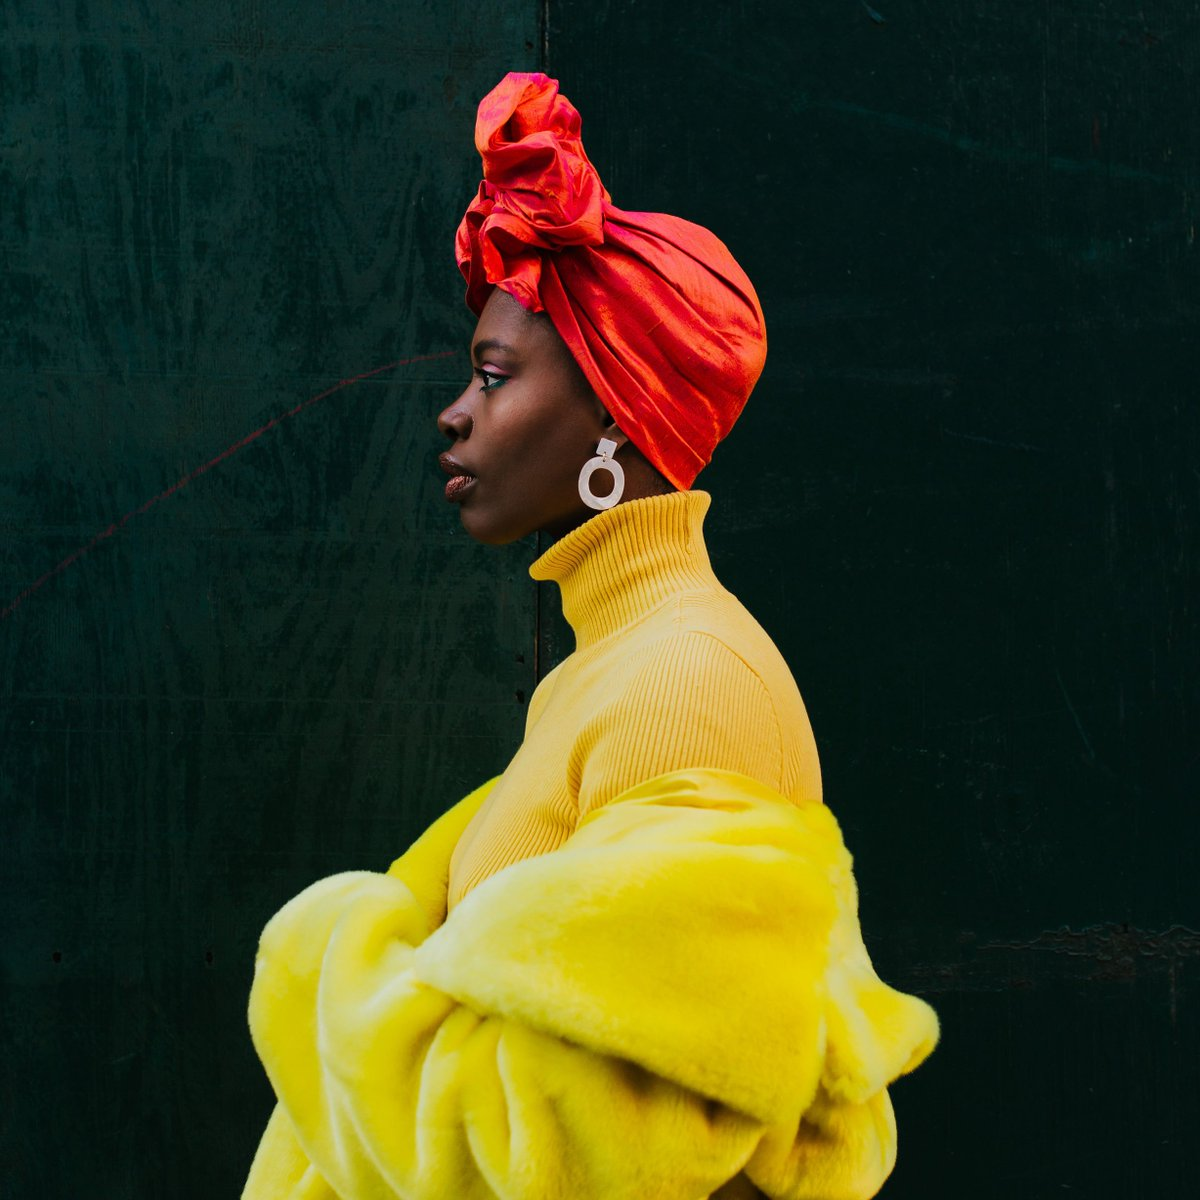 Today on our story: creative director @FindingPaola stands tall in her signature headwraps. #BlackHistoryMonth https://www.instagram.com/p/Bt6gc2MAtAN/